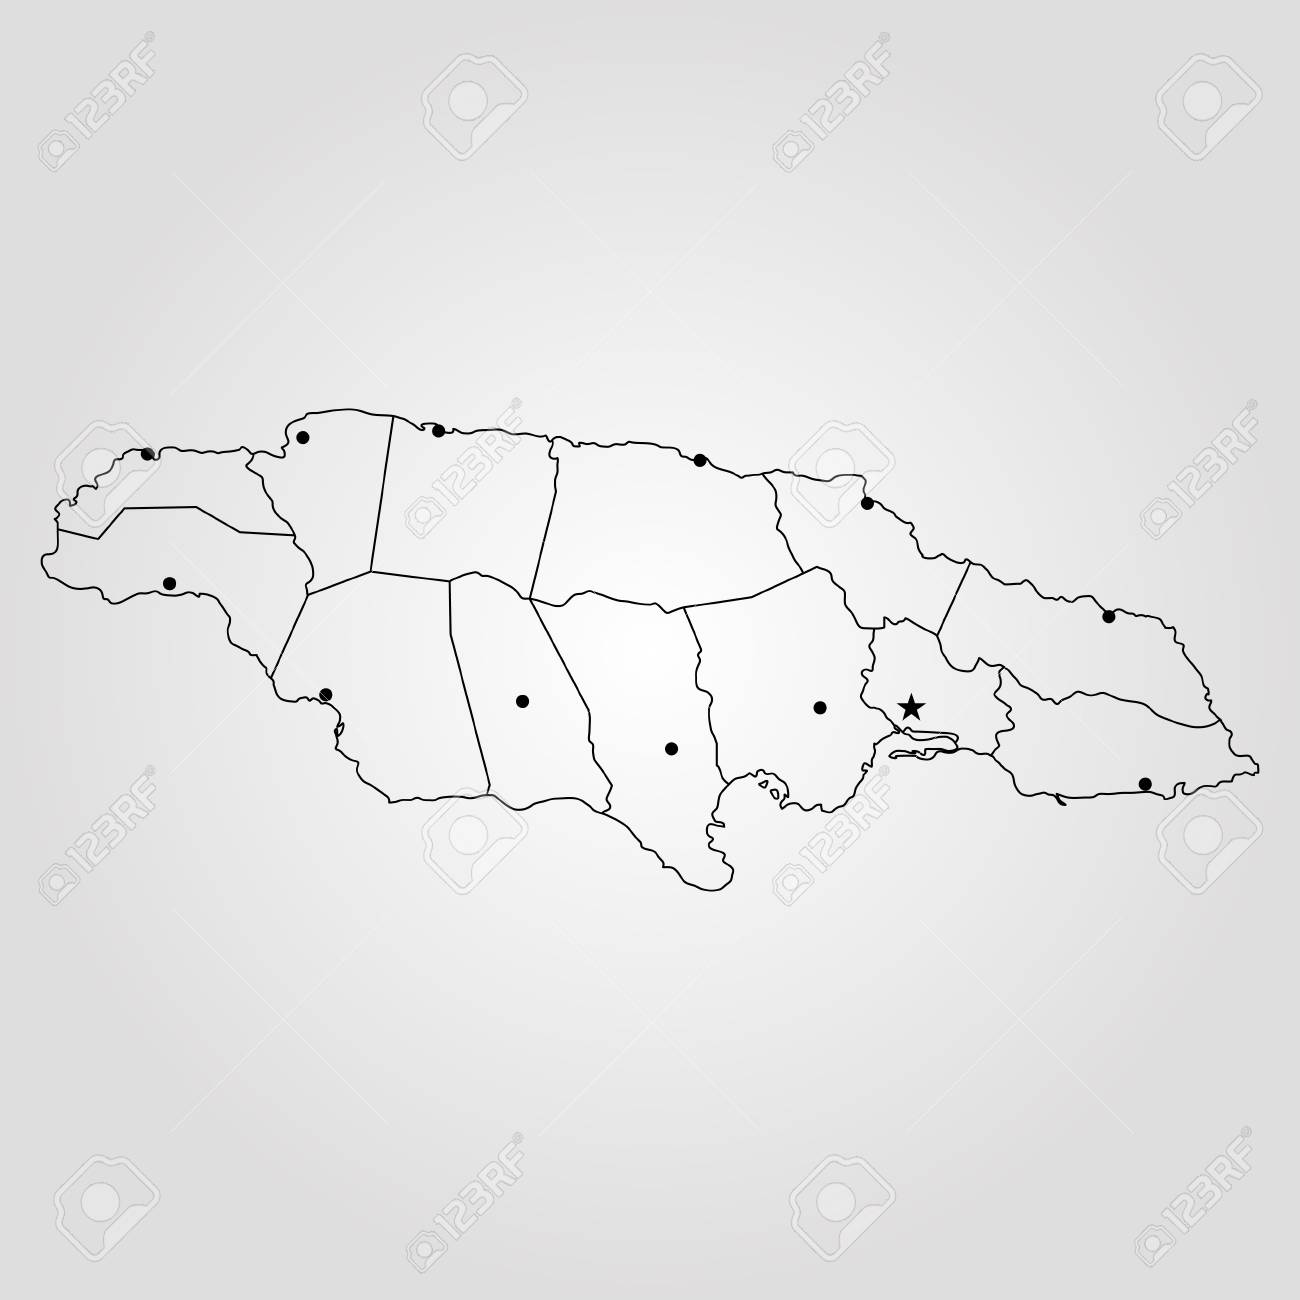 Map of Jamaica. Vector illustration. World map